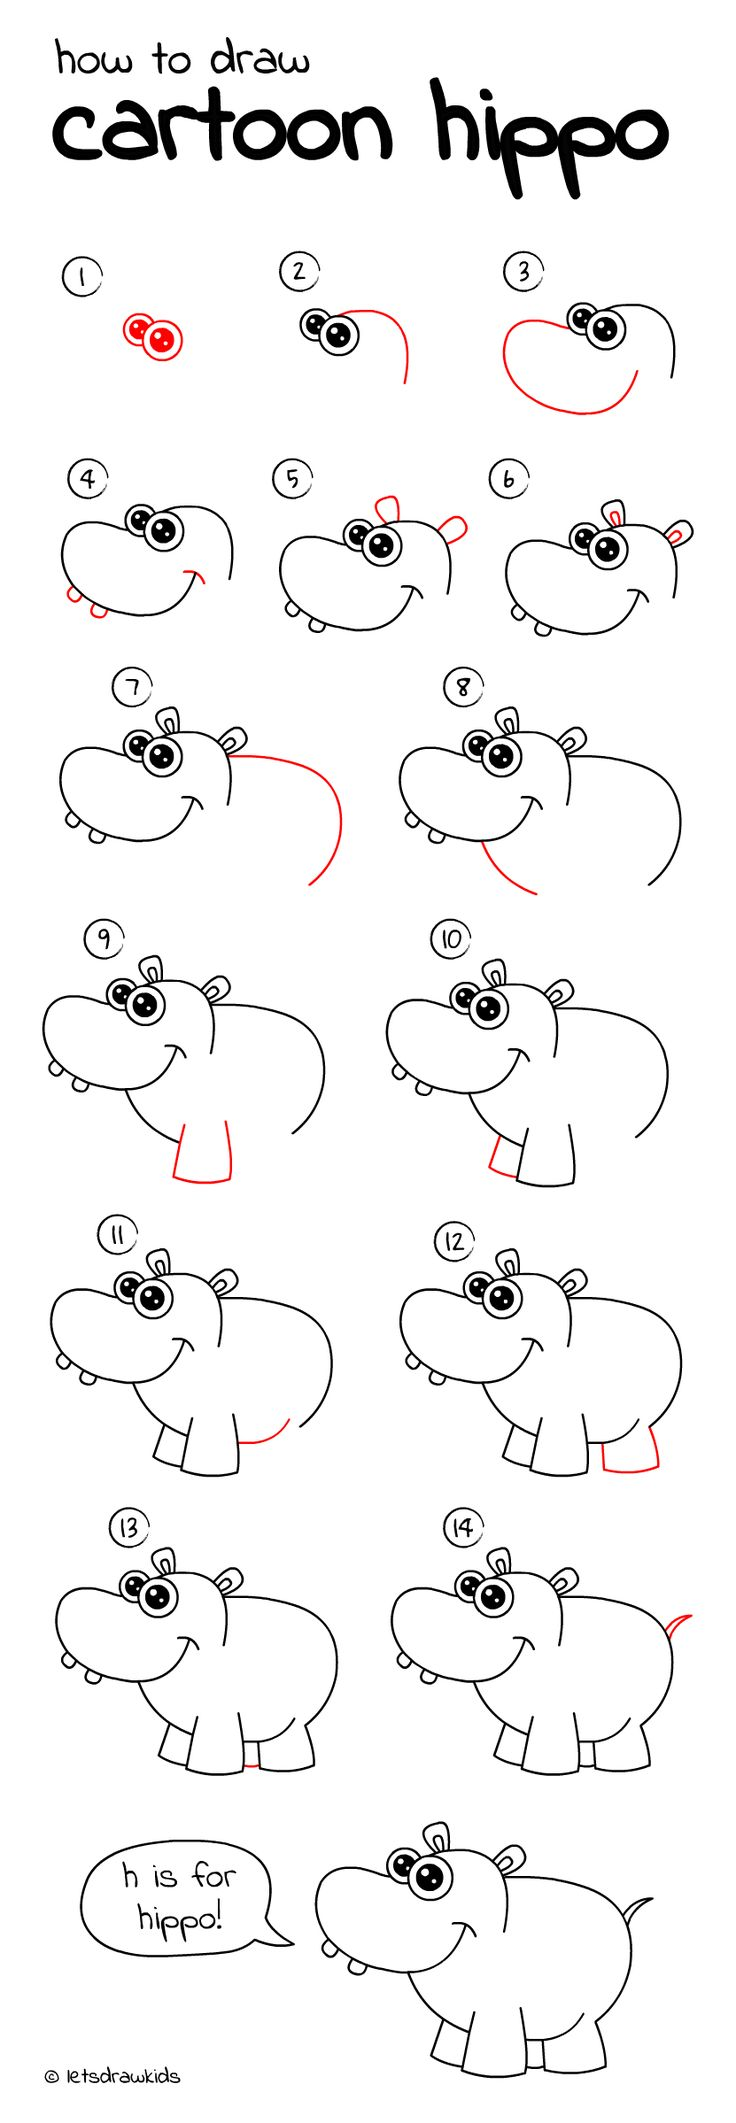 how to draw cartoon hippo easy drawing step by step perfect for kids - Drawing Sketch For Kids